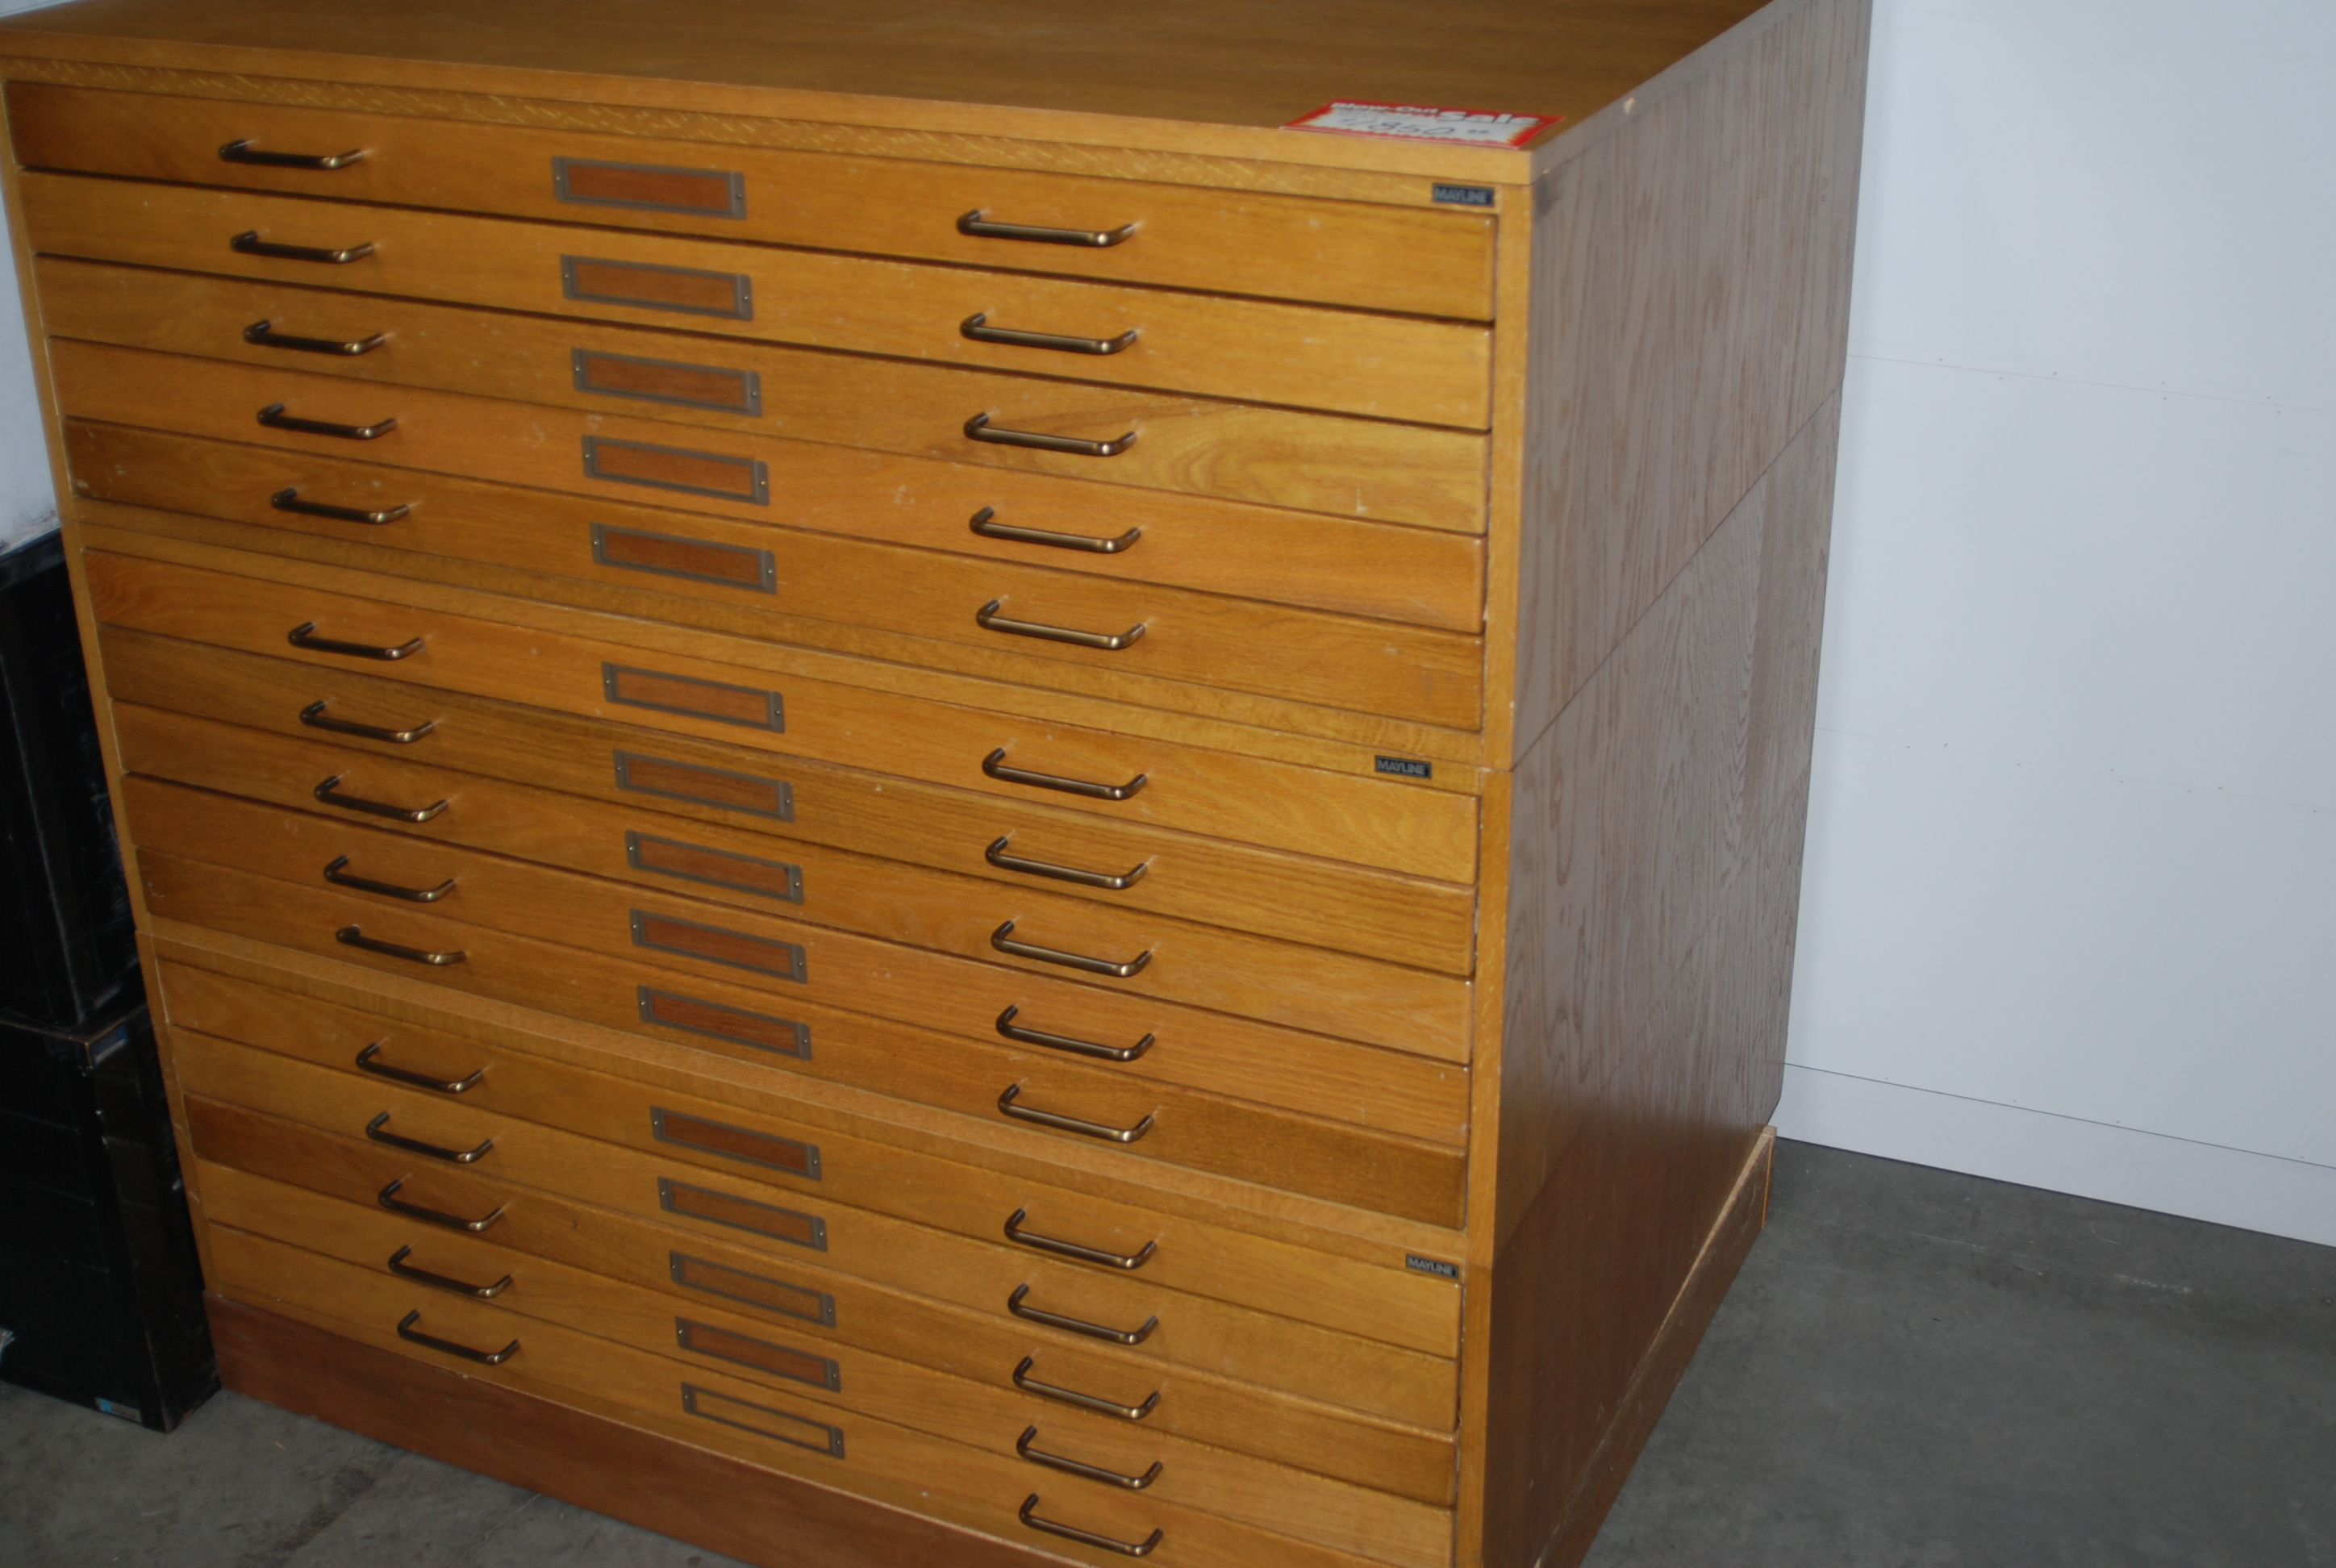 Used Wood Flat Files Mayline 5 Drawer Sold Includes 3 1 Cap And Base Holds Up To 30 X 42 Drawings